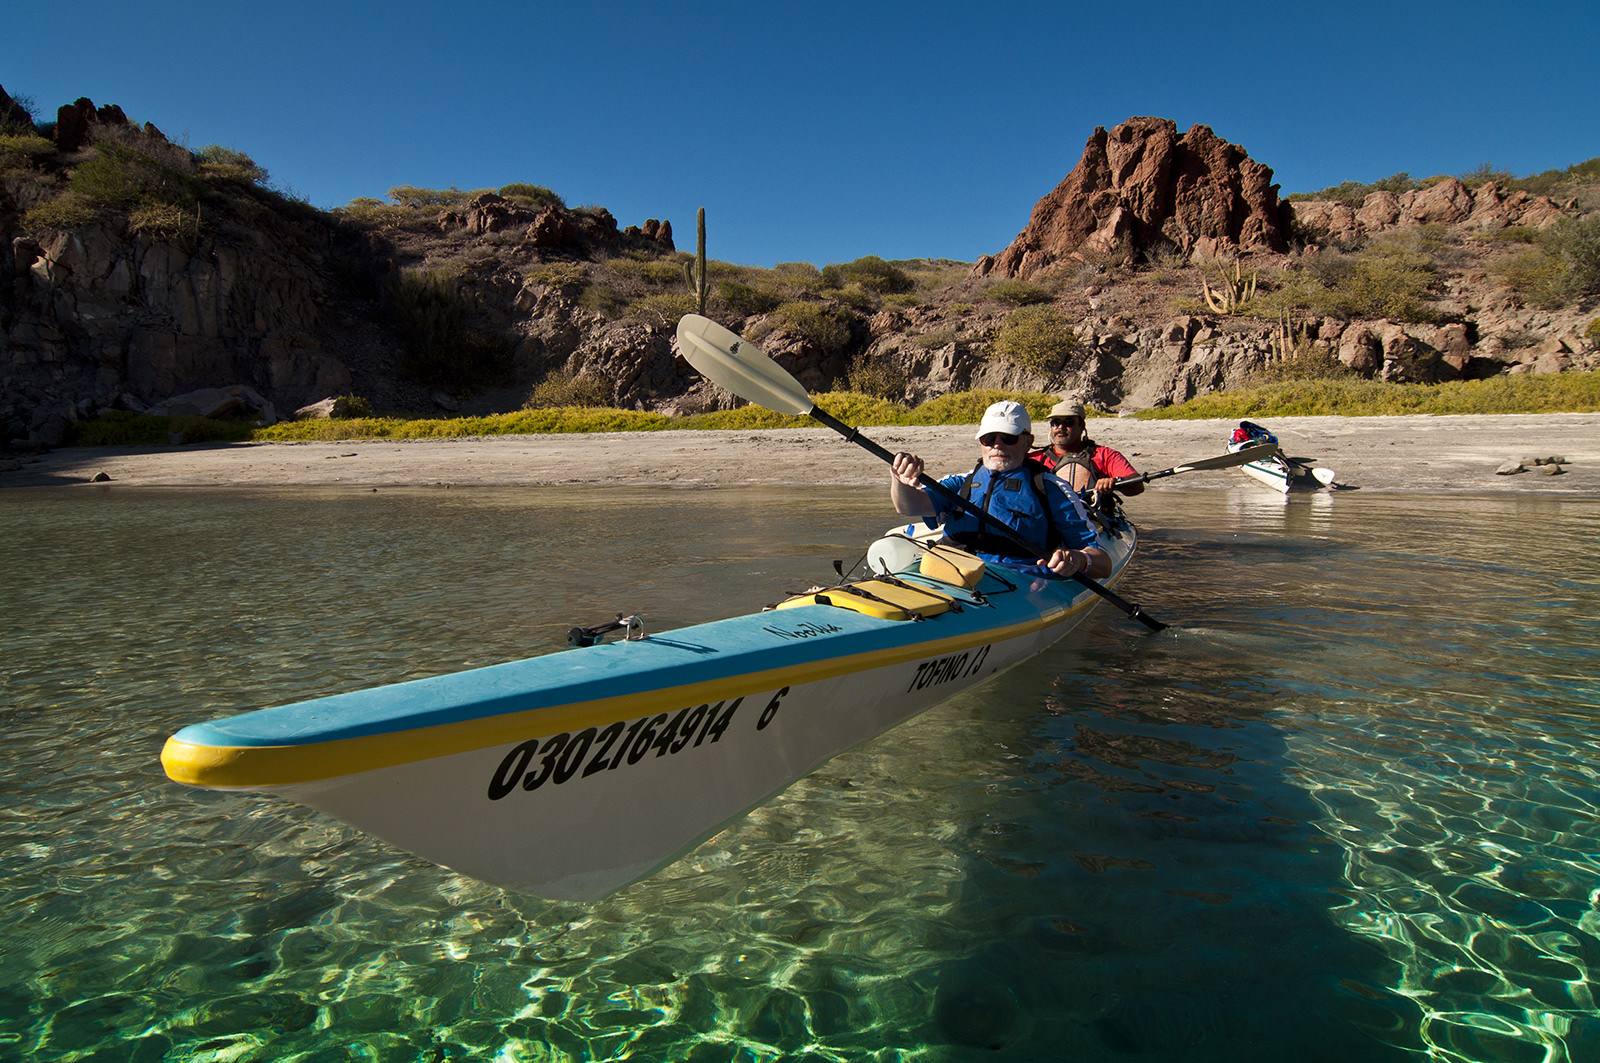 Baja Kayaking The Sea of Cortez